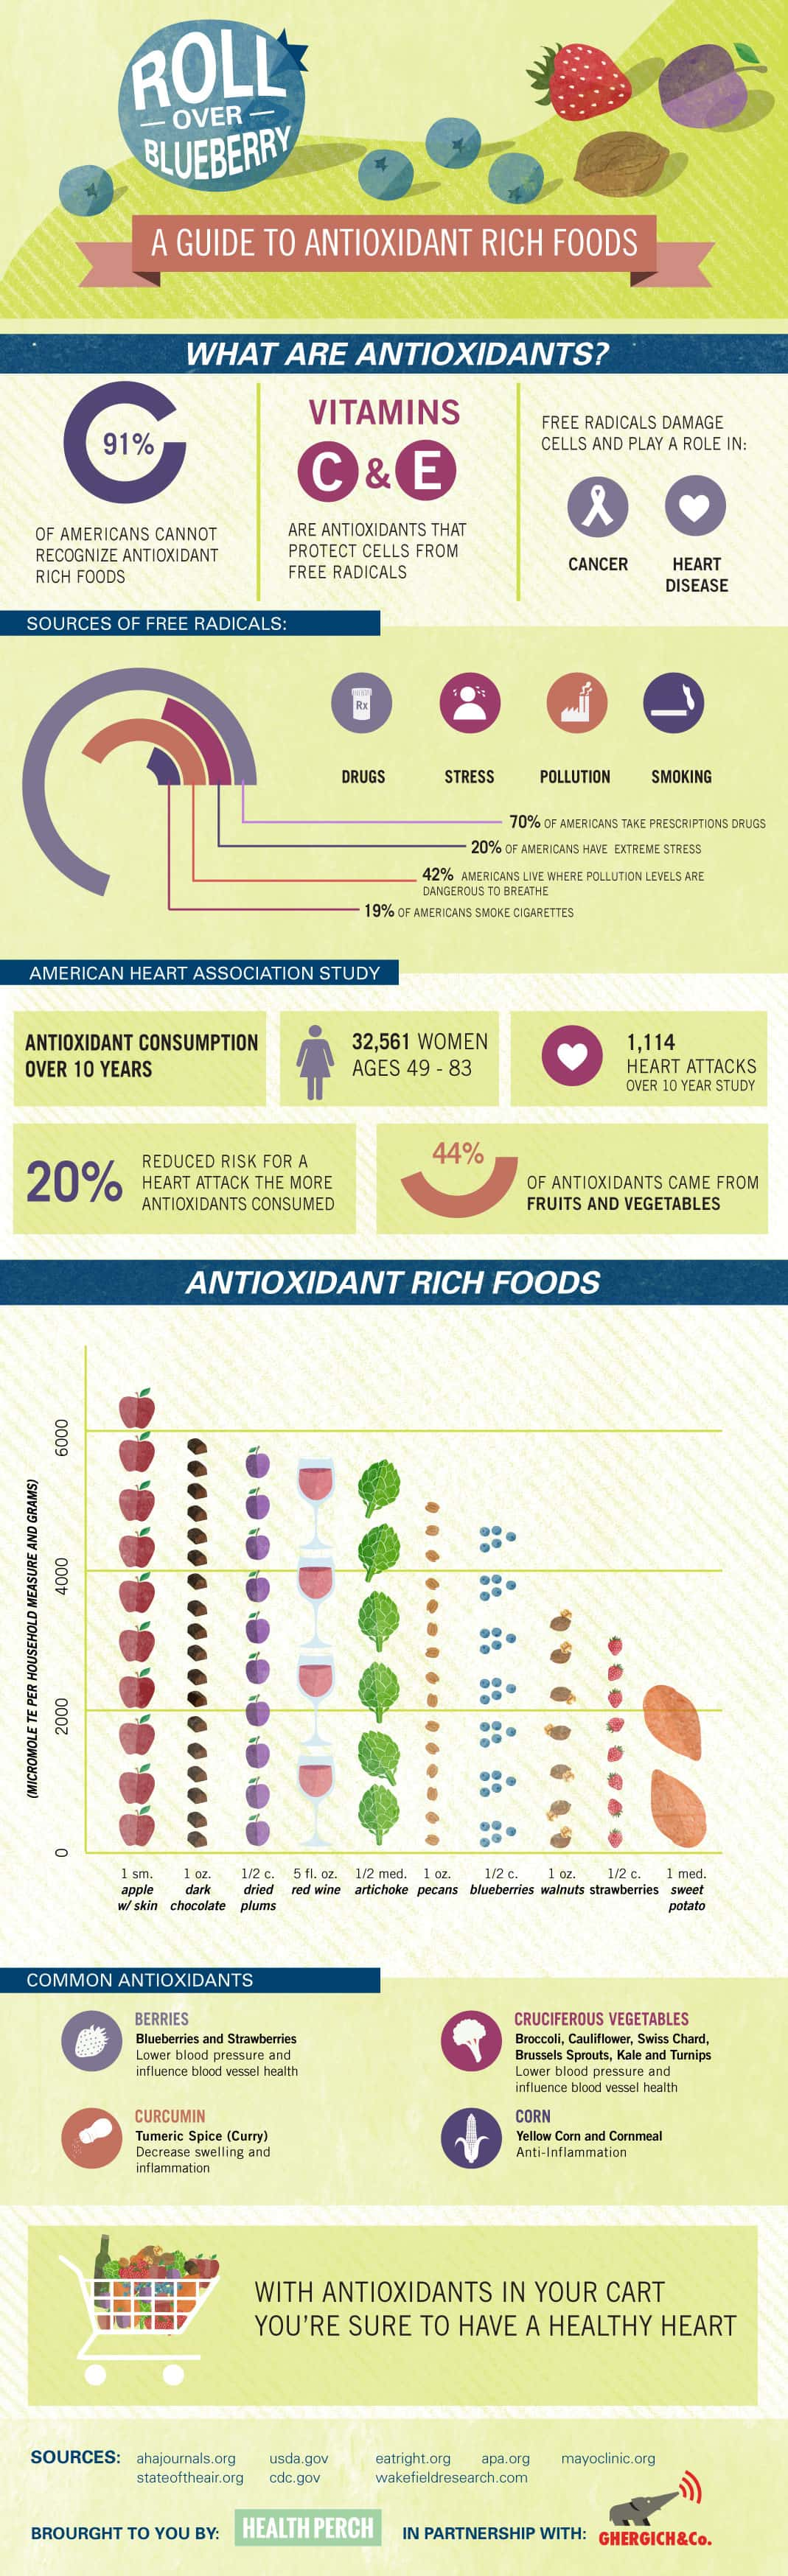 Roll Over Blueberry - A Guide To Antioxidants - Infographic